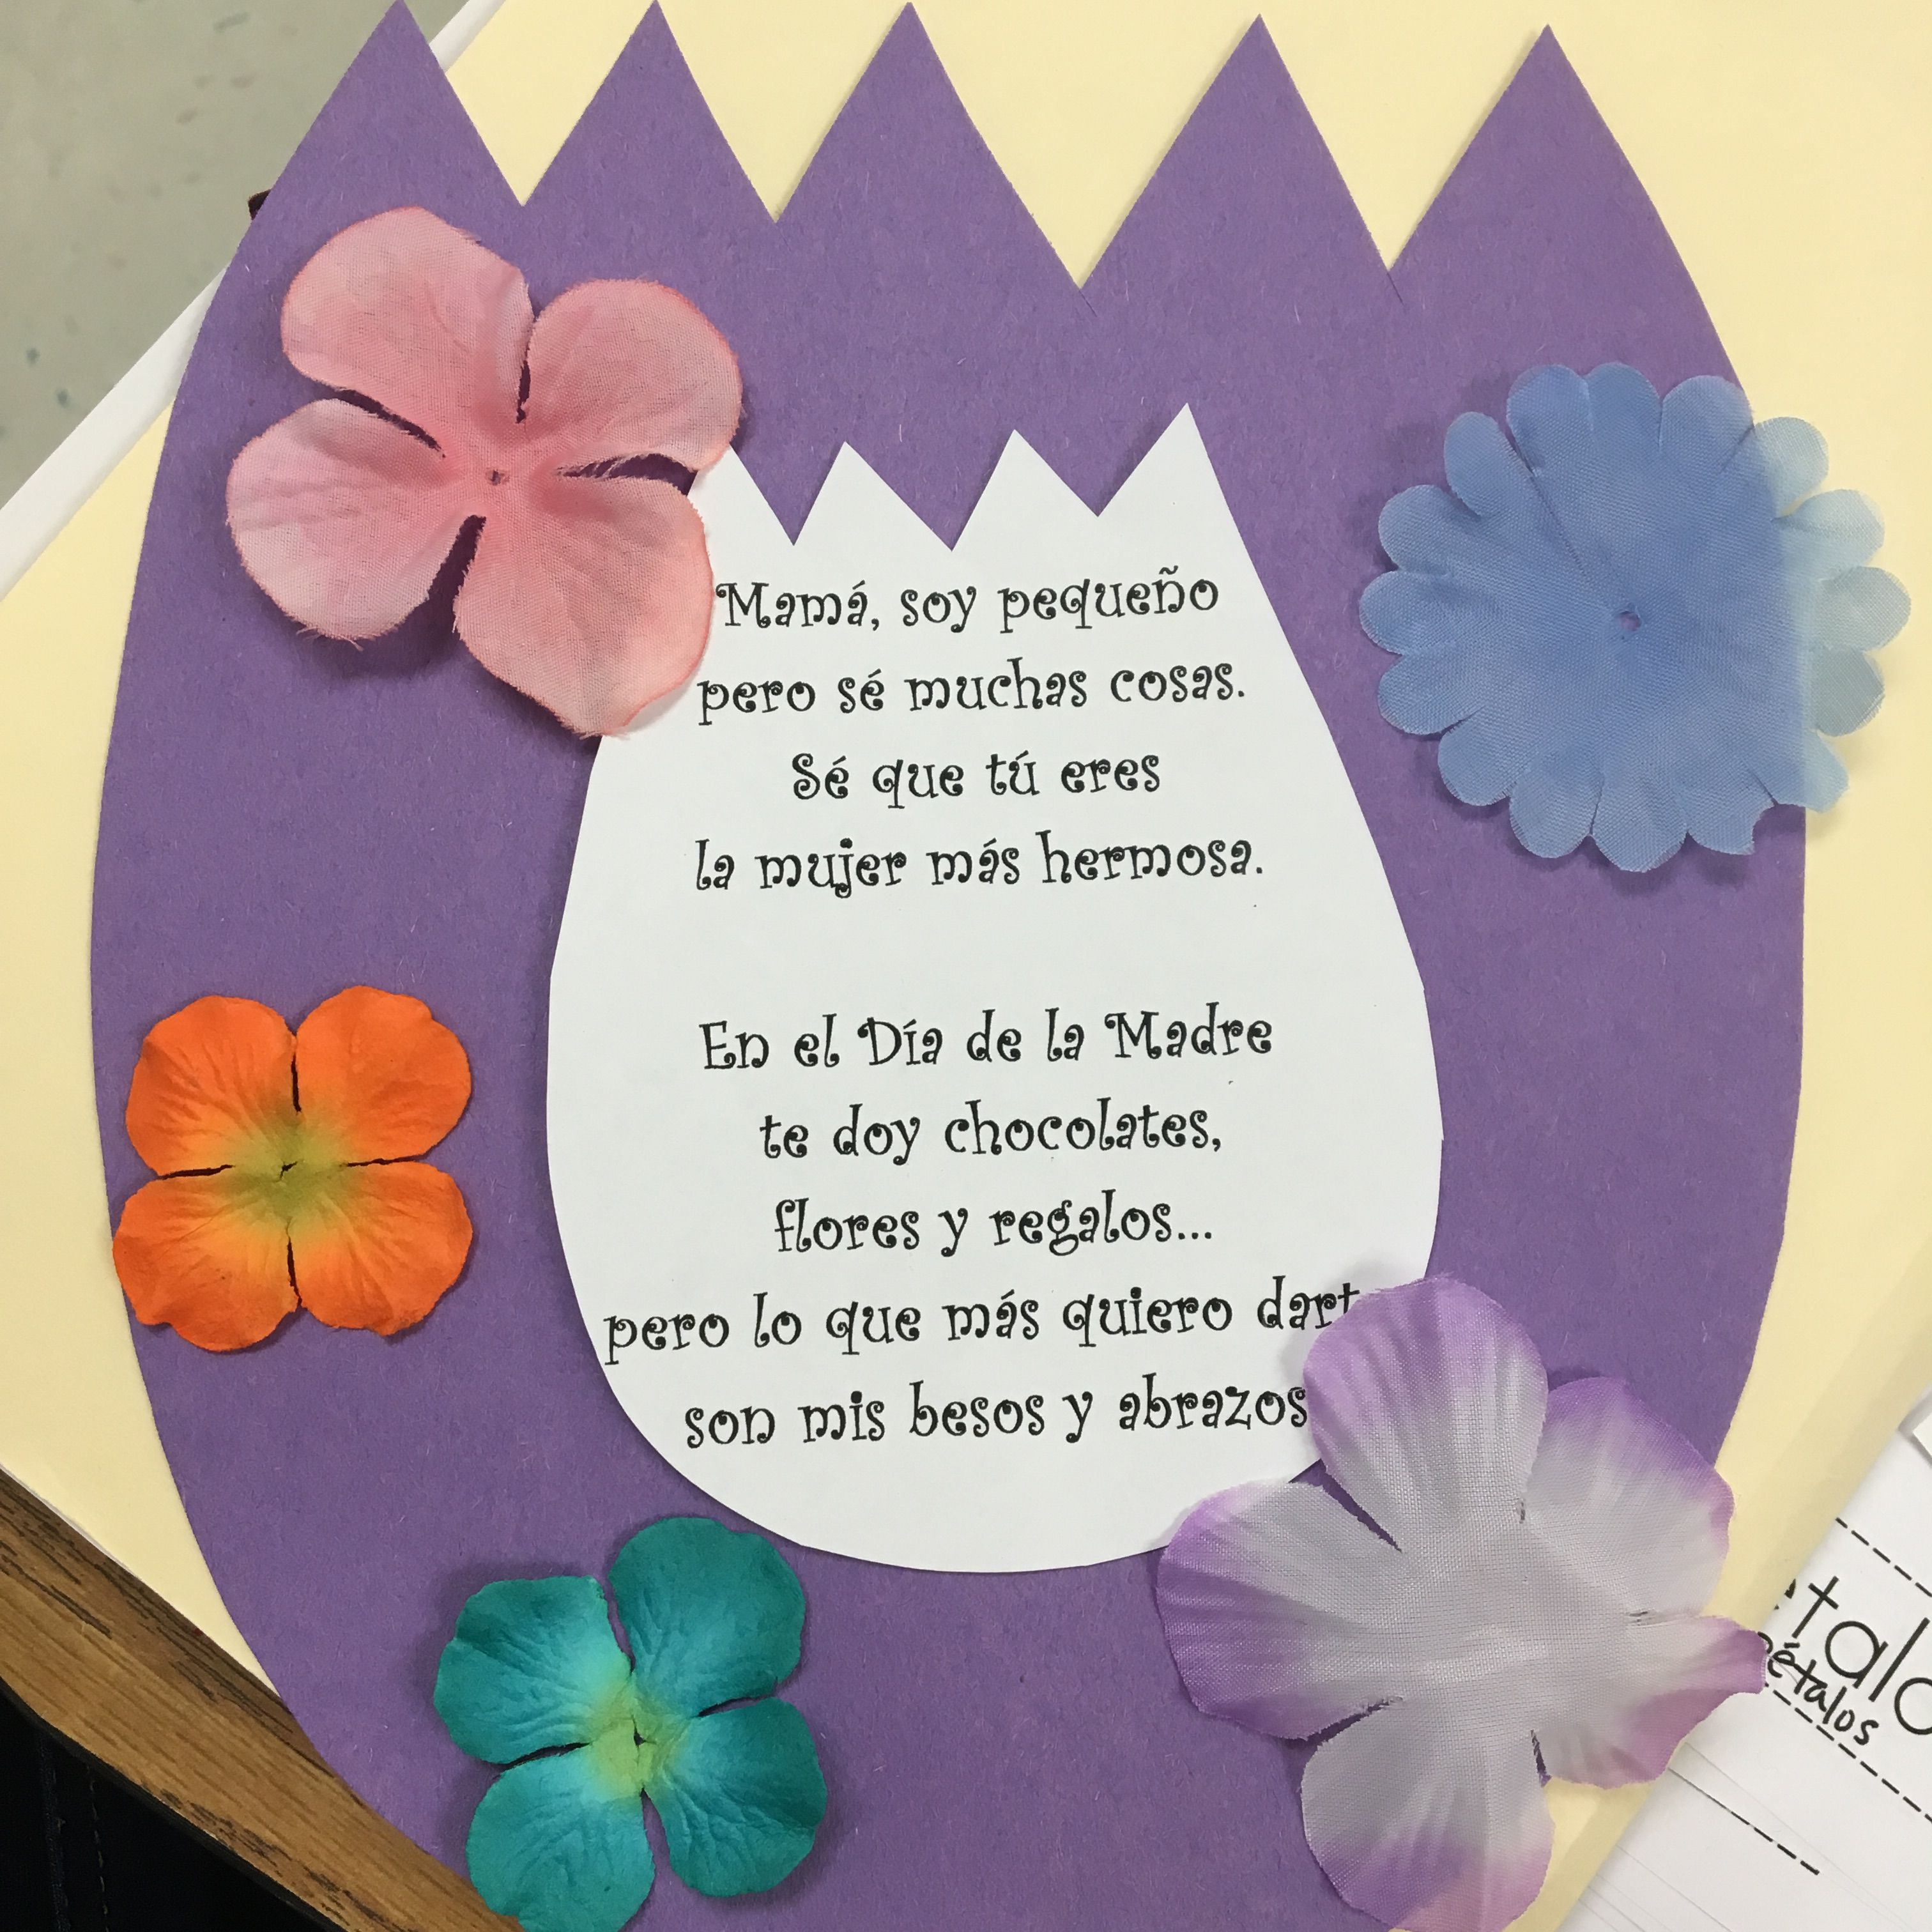 Mothers Day Text Messages Wishes In Spanish Happy Mothers Day